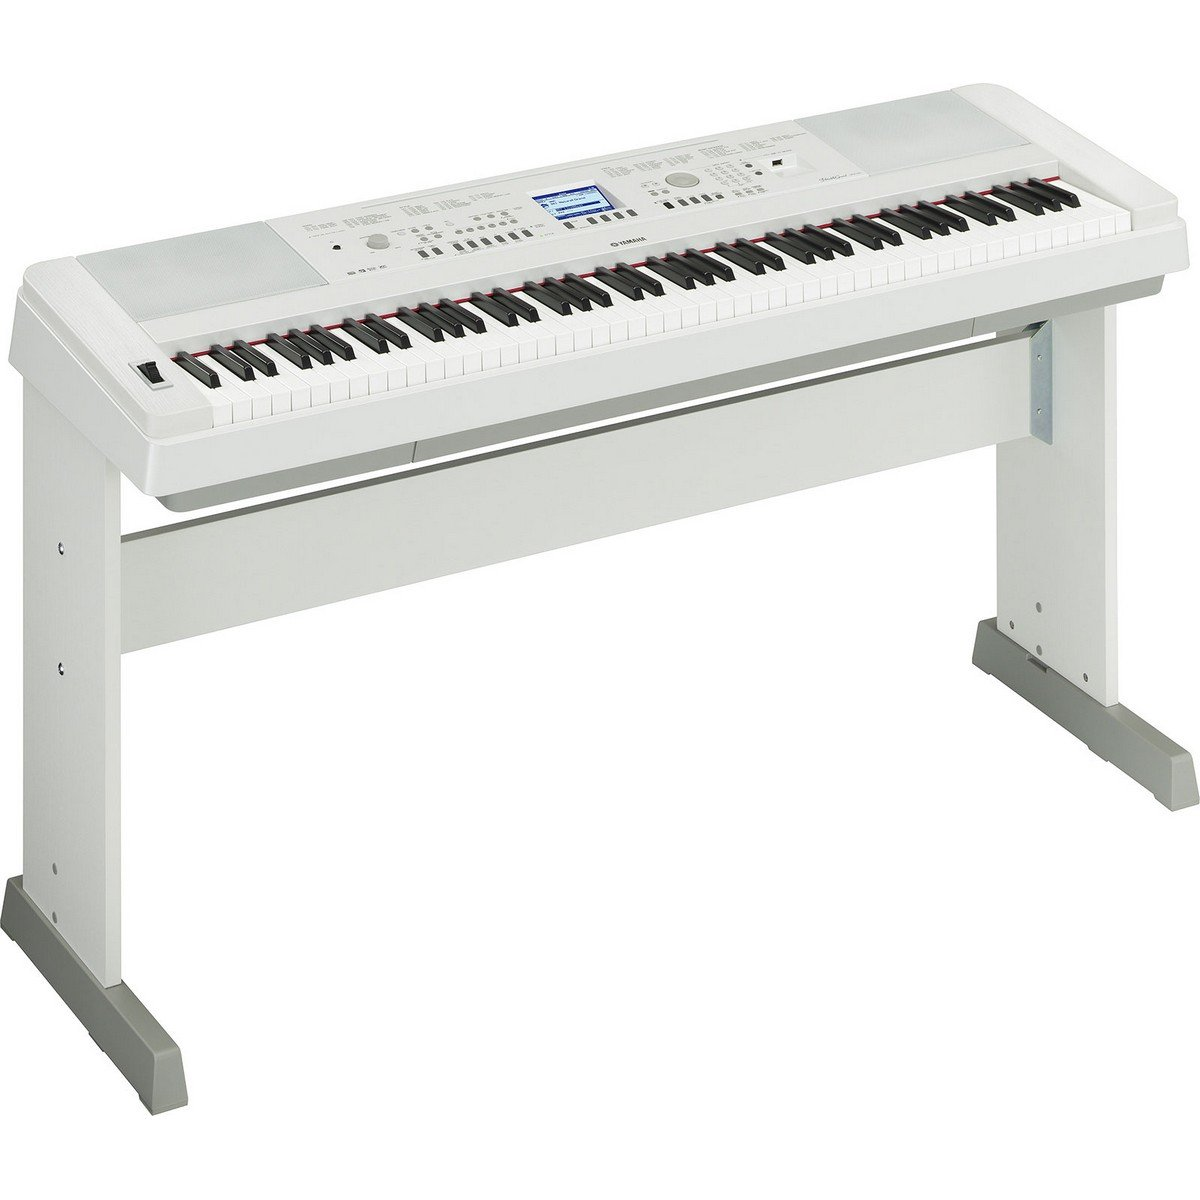 Yamaha DGX650WH Digital Piano by YAMAHA